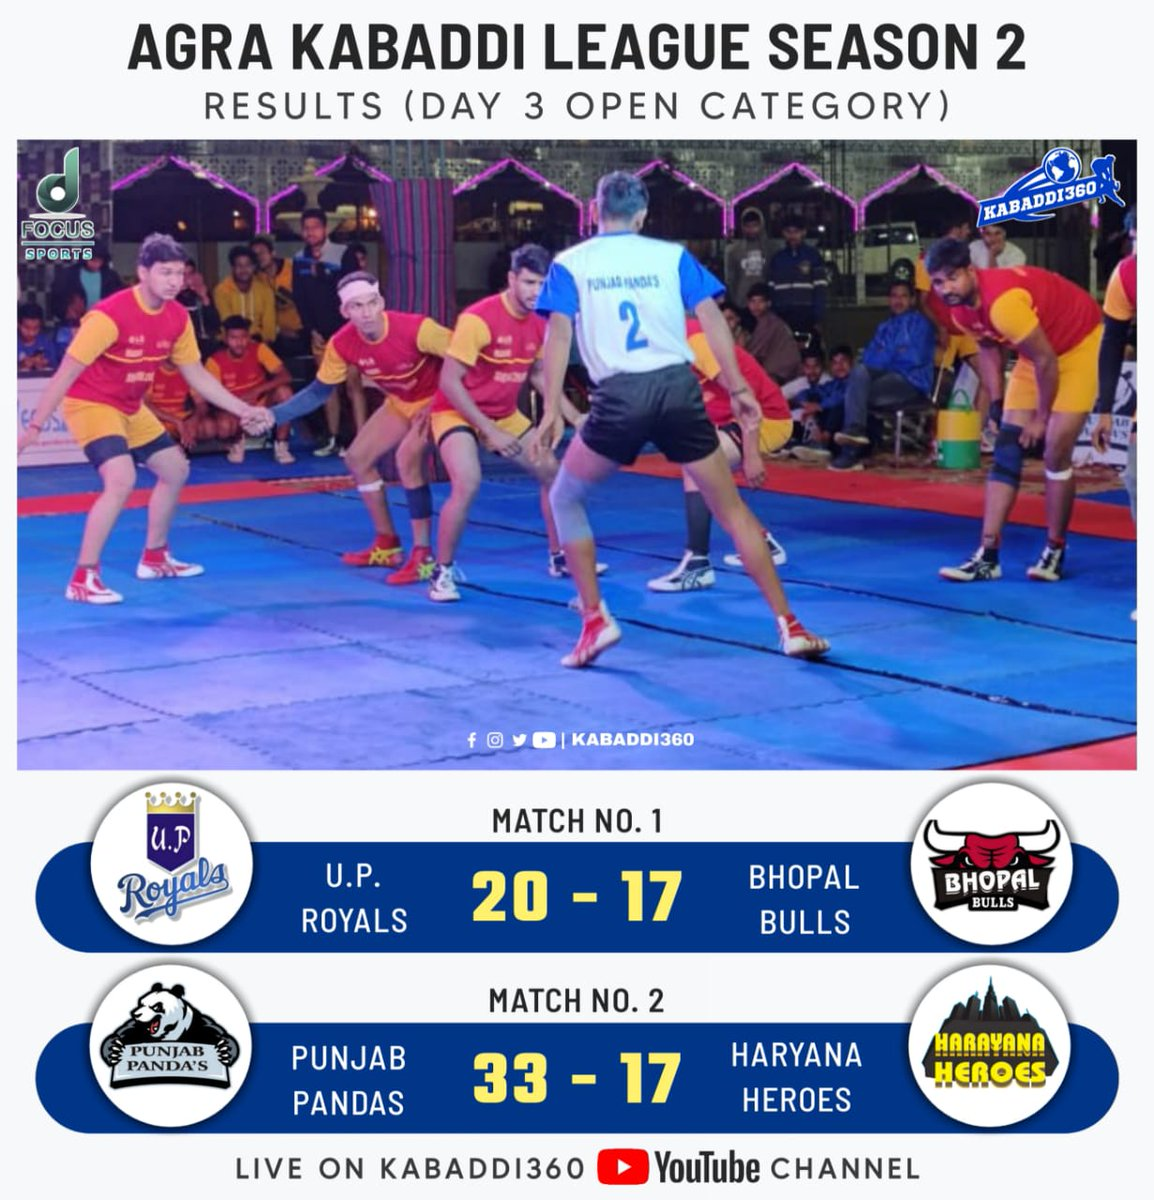 Come back tomorrow to see the senior players in action & Finals of Agra Kabaddi League S2 on Kabaddi360 📲🎉  #AgraKabaddiLeague #Kabaddi360 #KabaddiResults